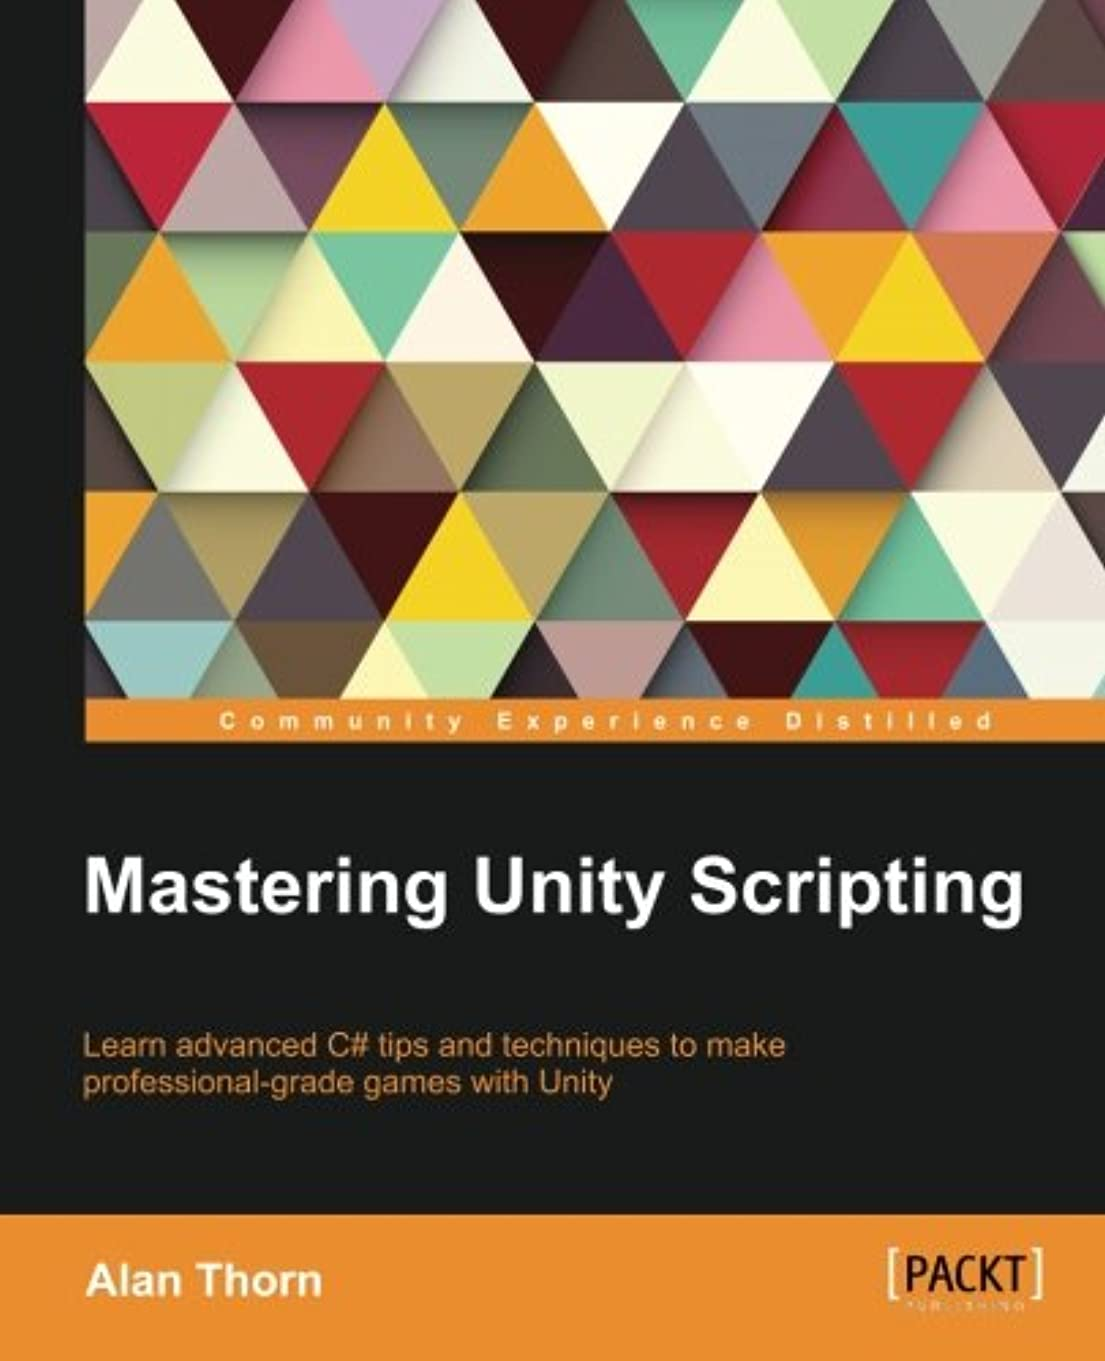 プレゼント包括的軽蔑Mastering Unity Scripting: Learn Advanced C# Tips and Techniques to Make Professional-grade Games With Unity